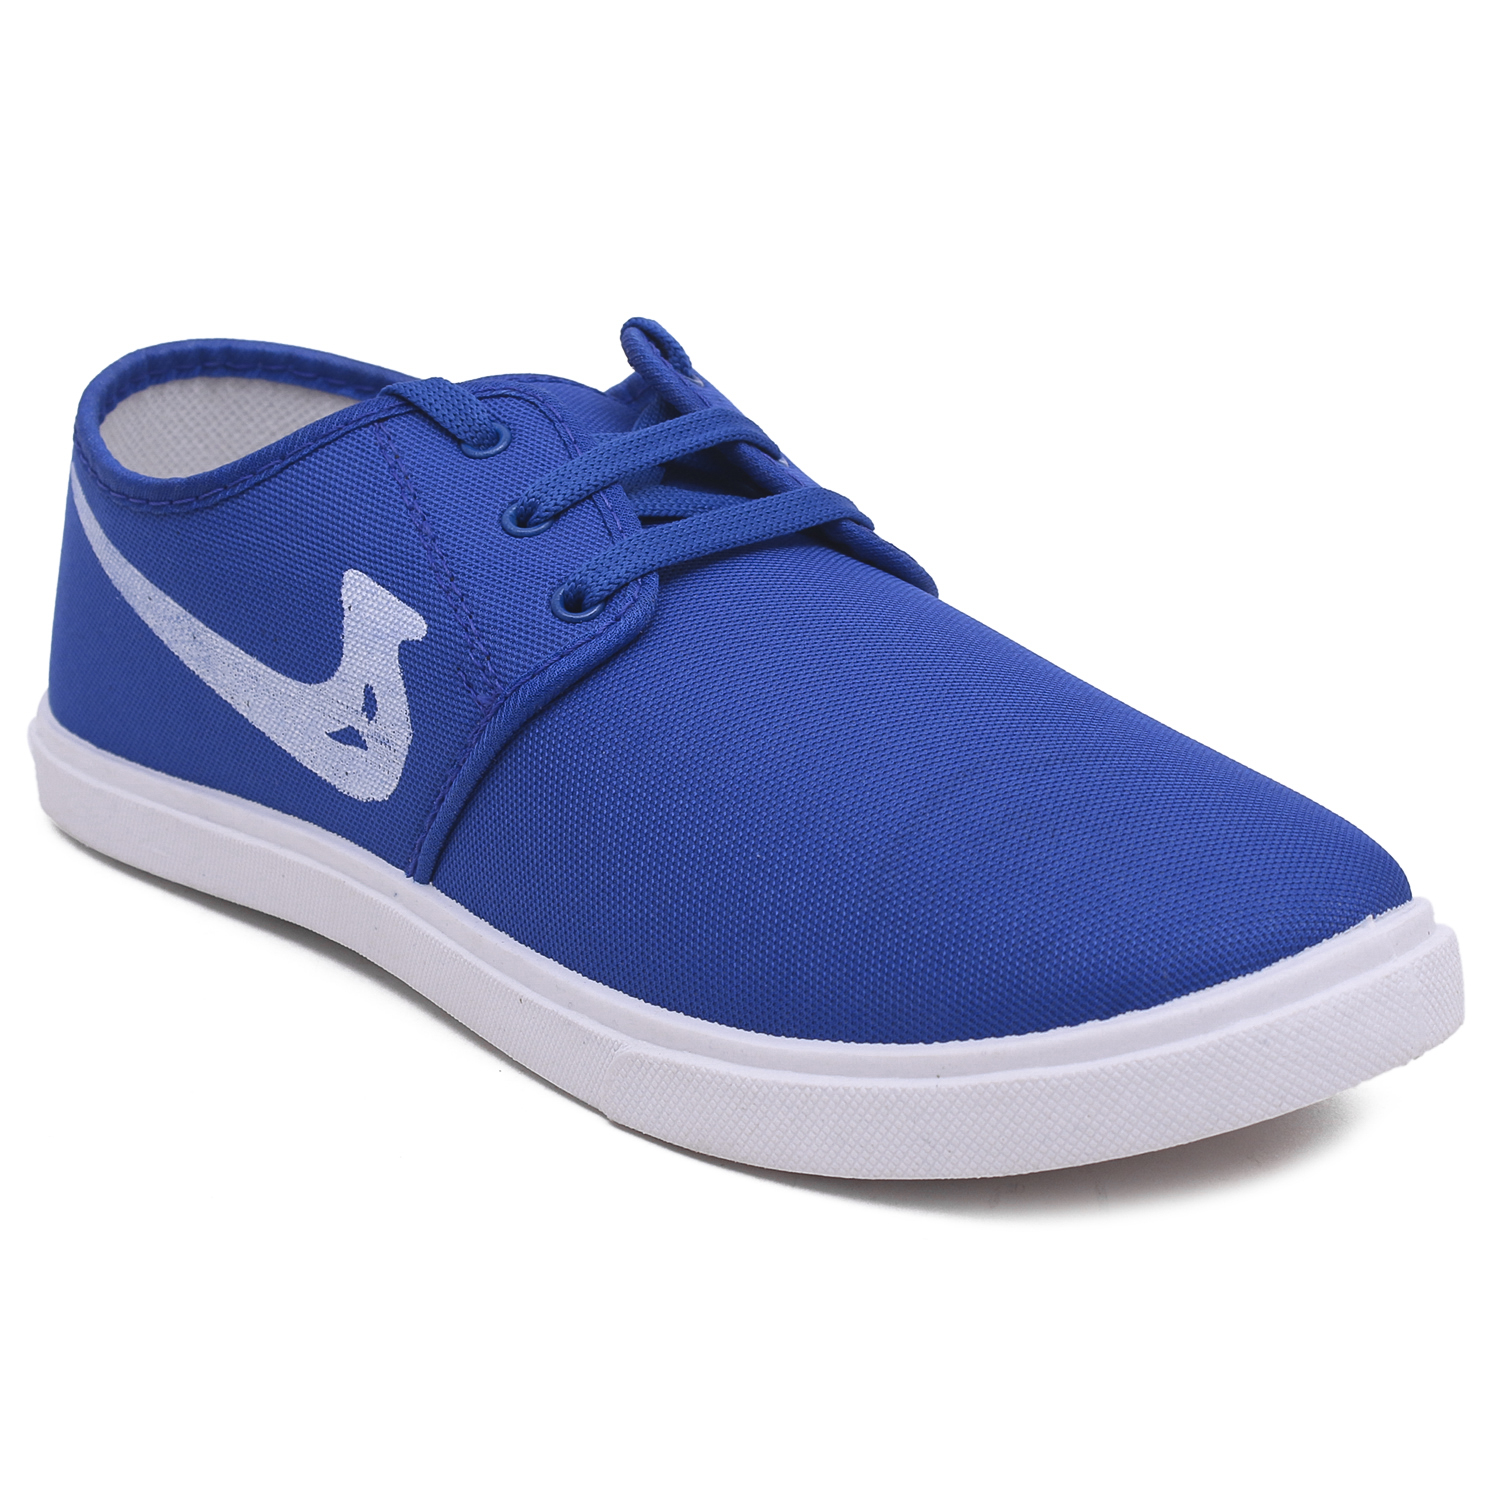 Foot Trends Stylish Trendy & Fashionable Canvas For Men HectorR.Blue (Royal Blue, 6-9, 4 PAIR)